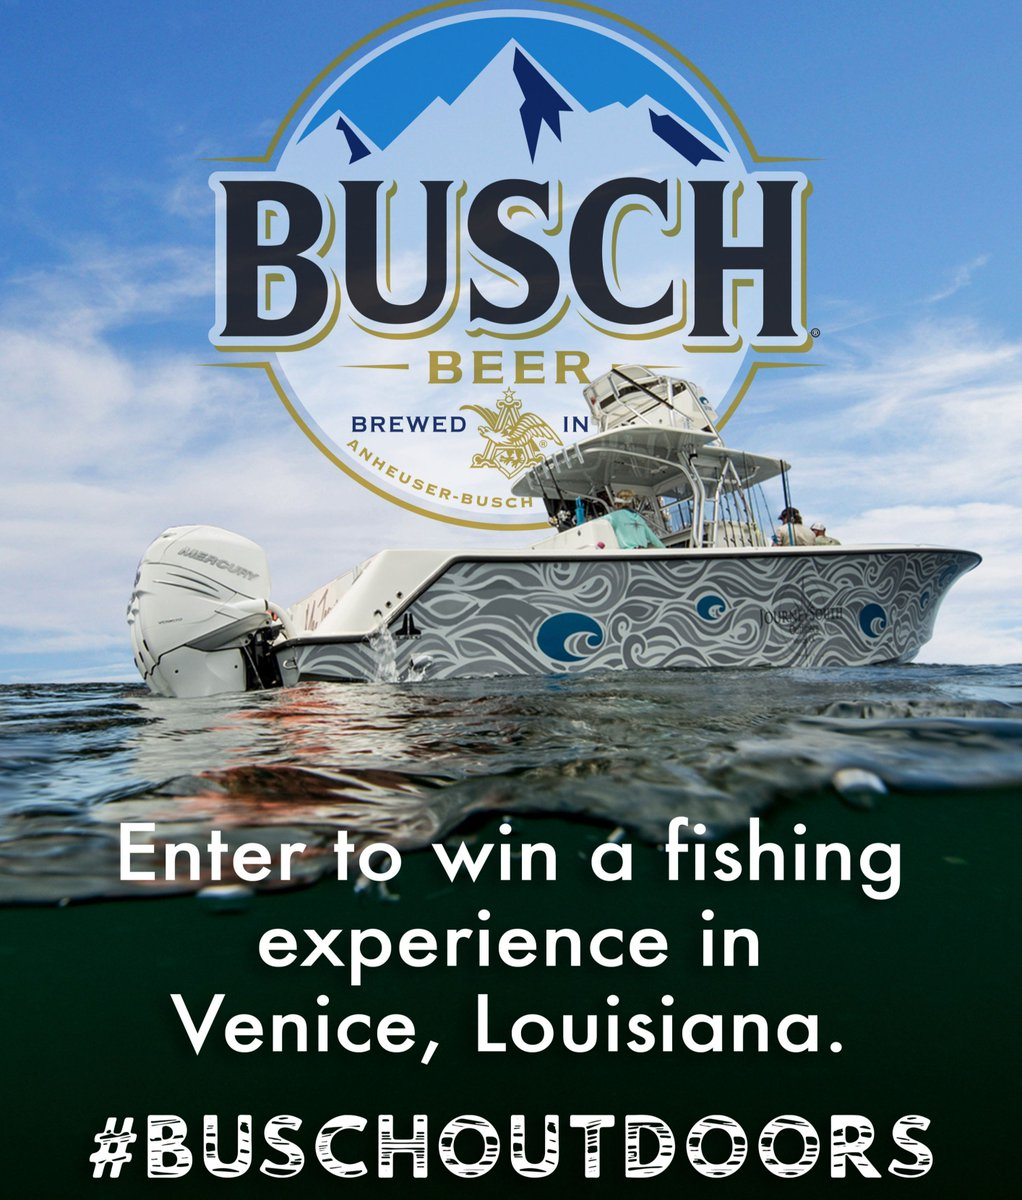 buschoutdoors tagged Tweets and Downloader | Twipu